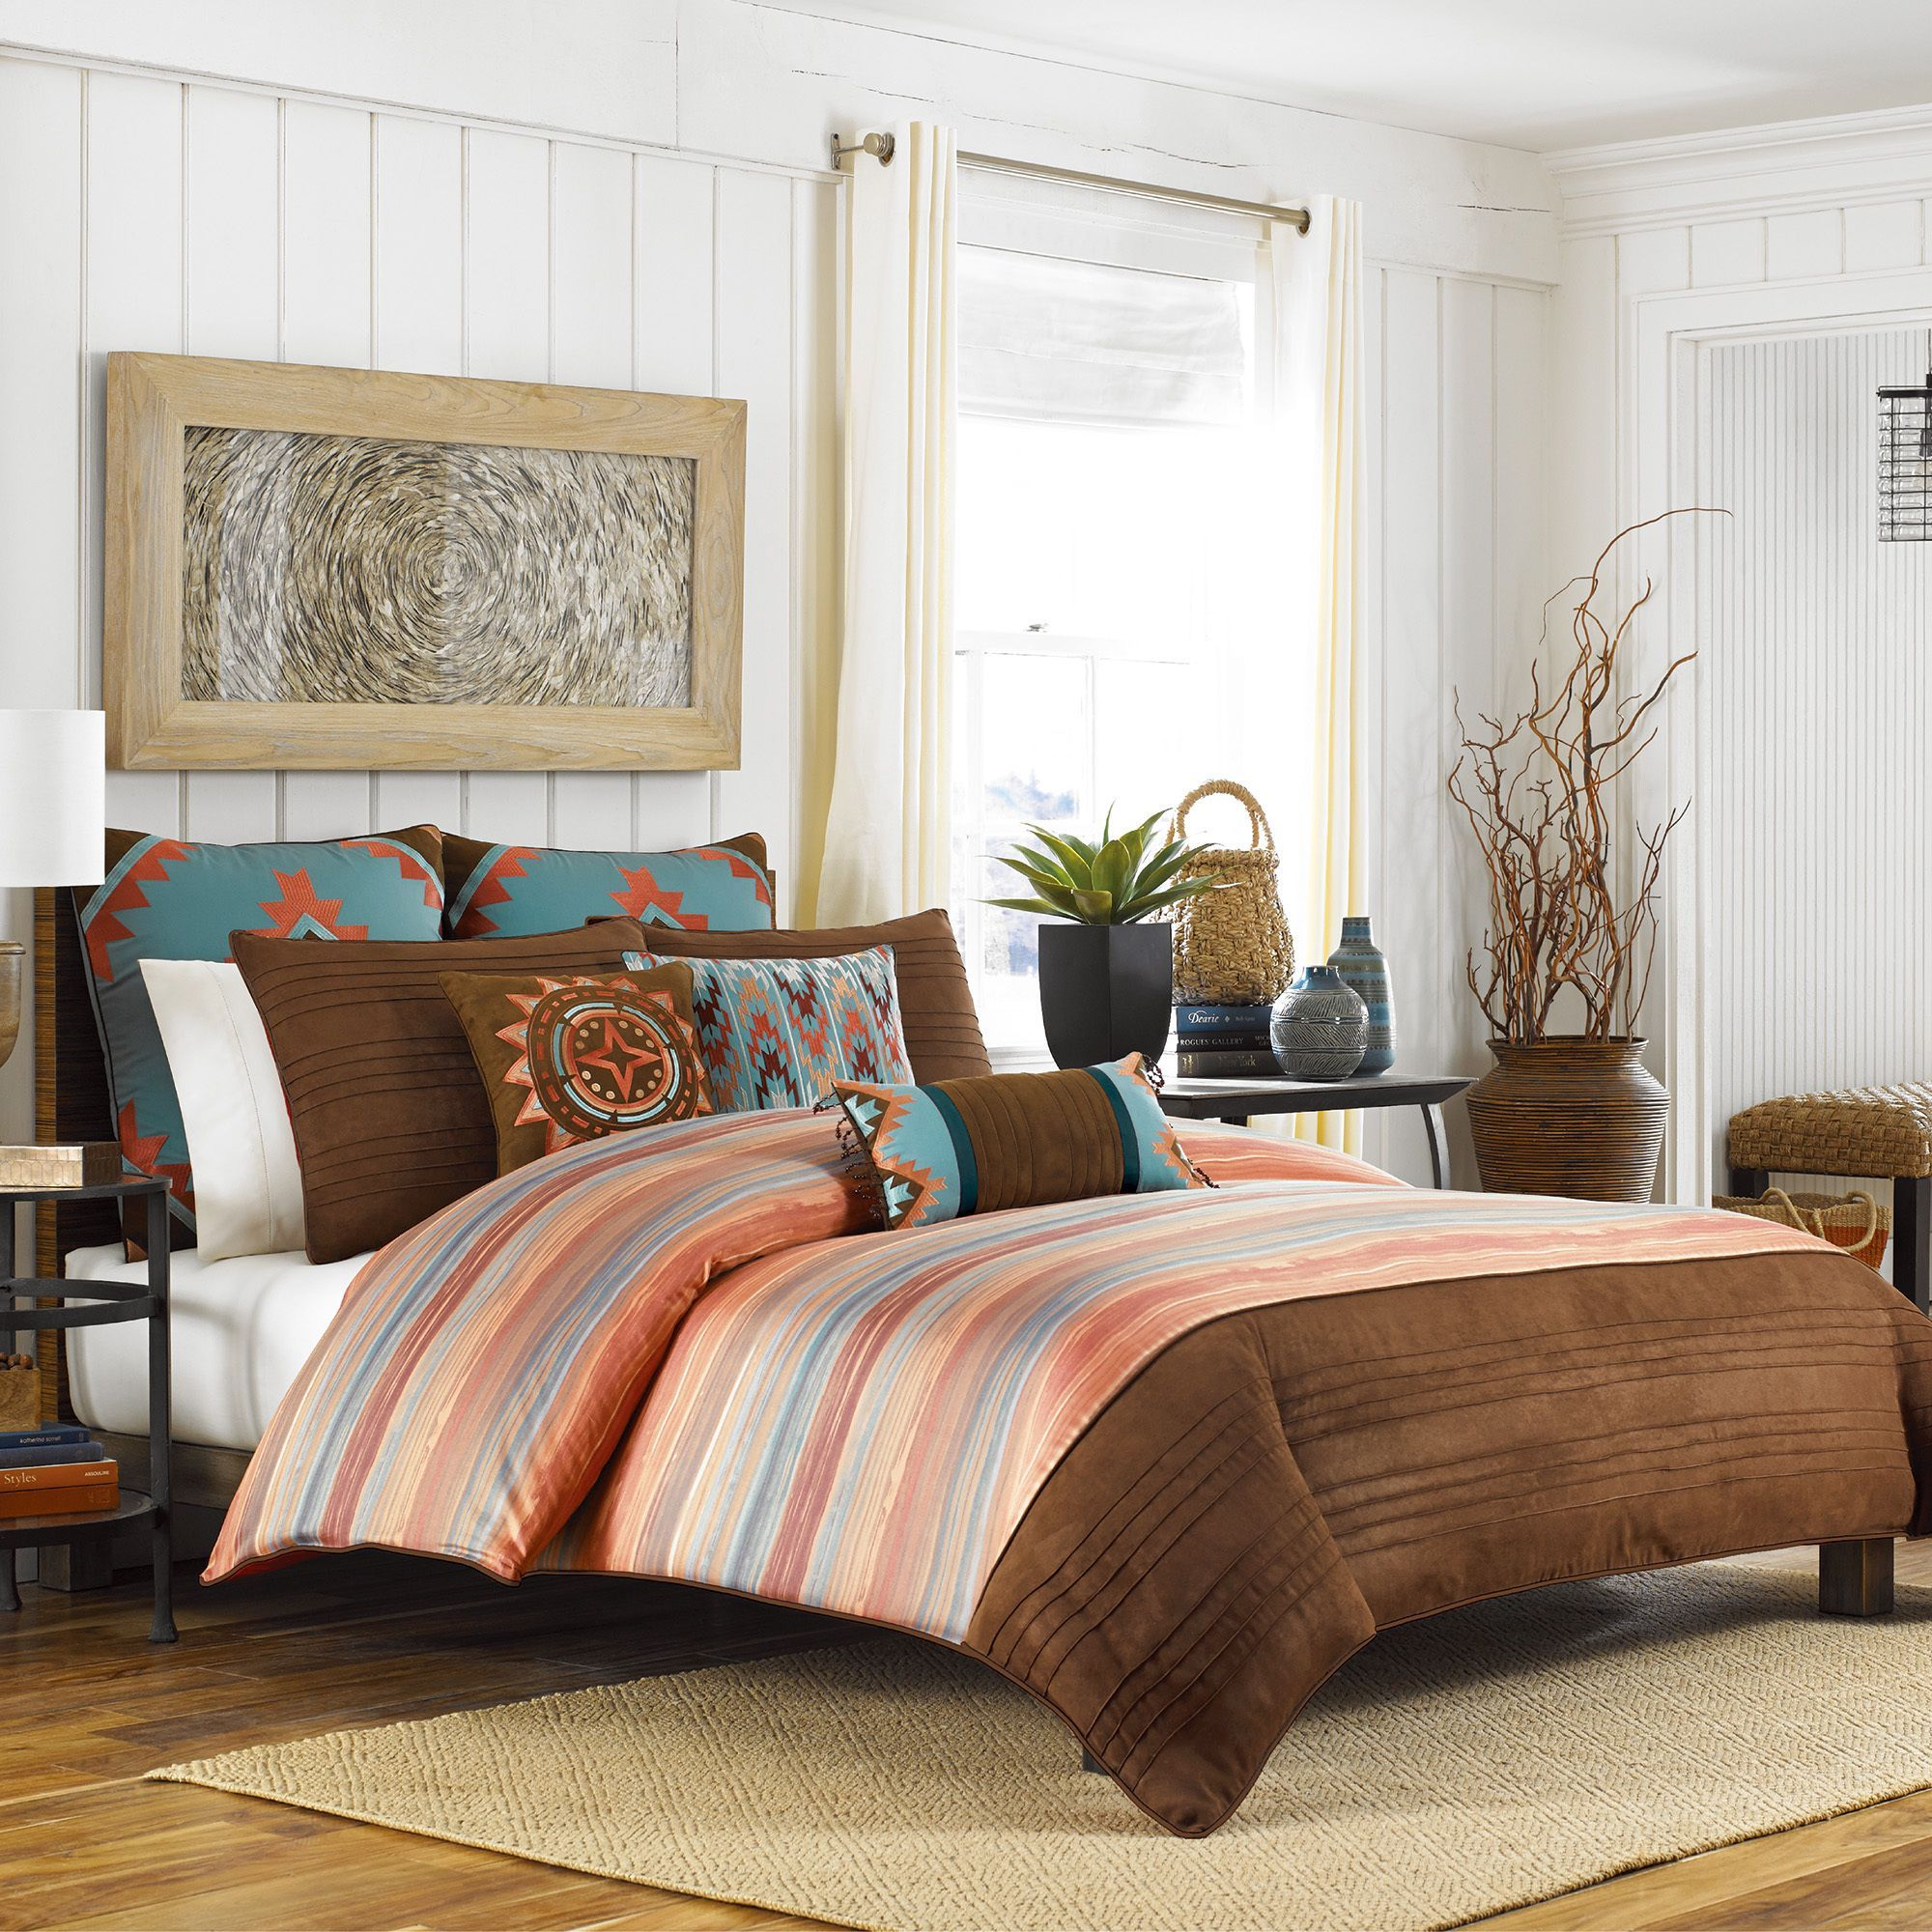 The Ventura Duvet Cover Collection brings a warm and